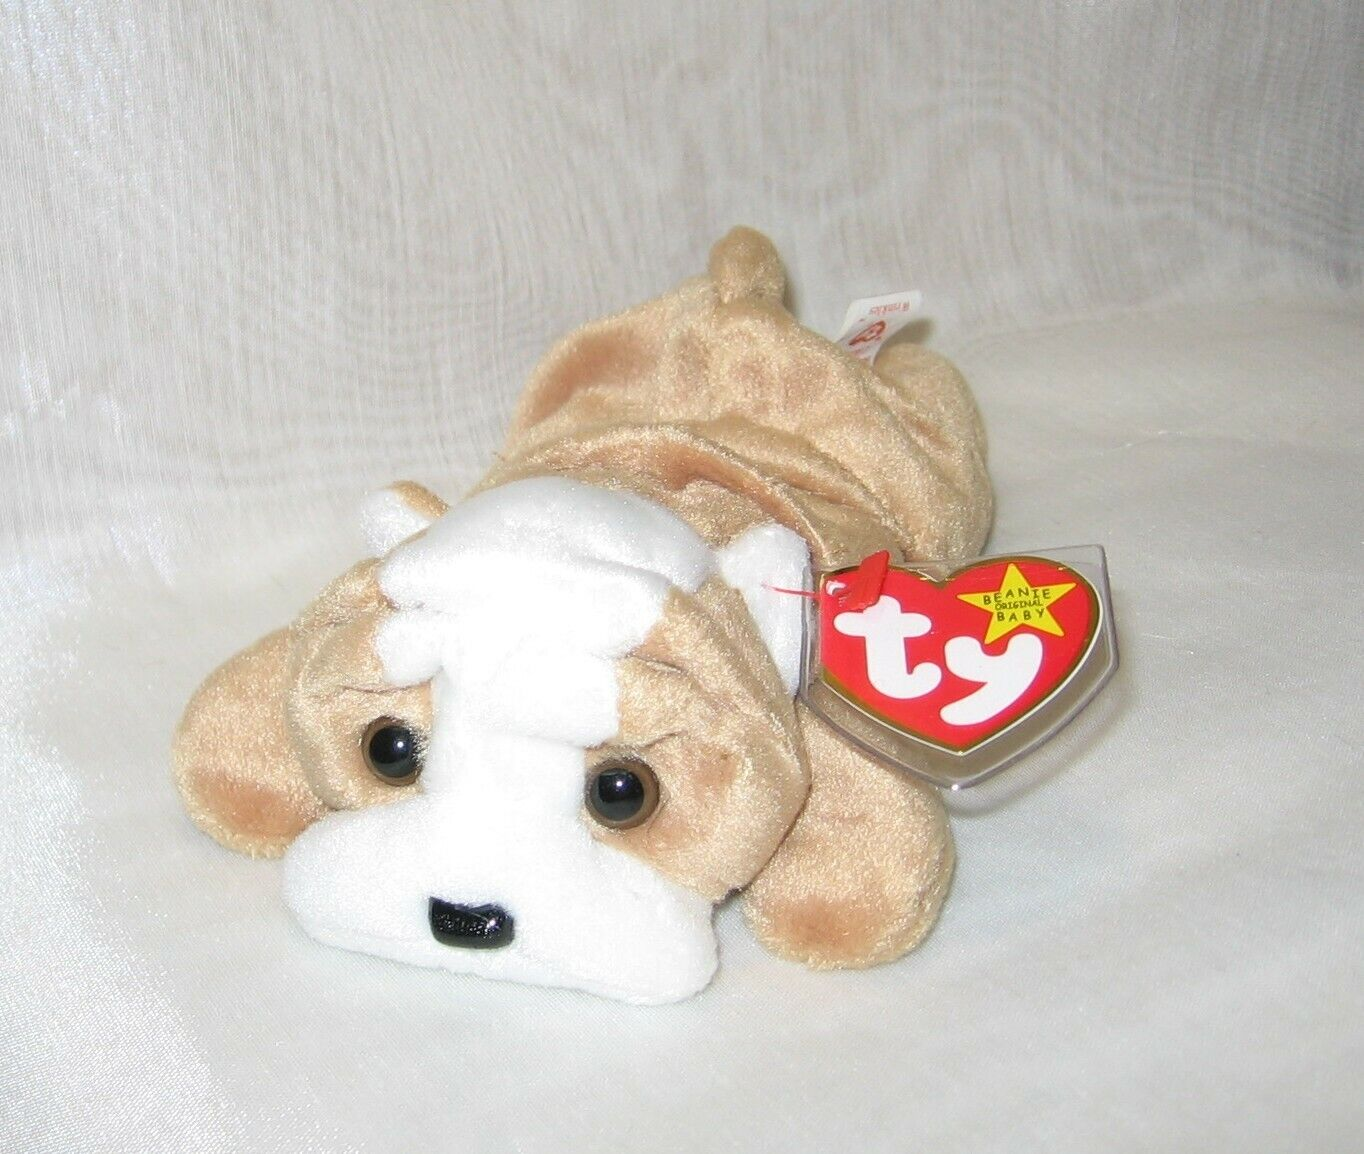 TY Beanie Baby Wrinkles - RARE with errors - 117